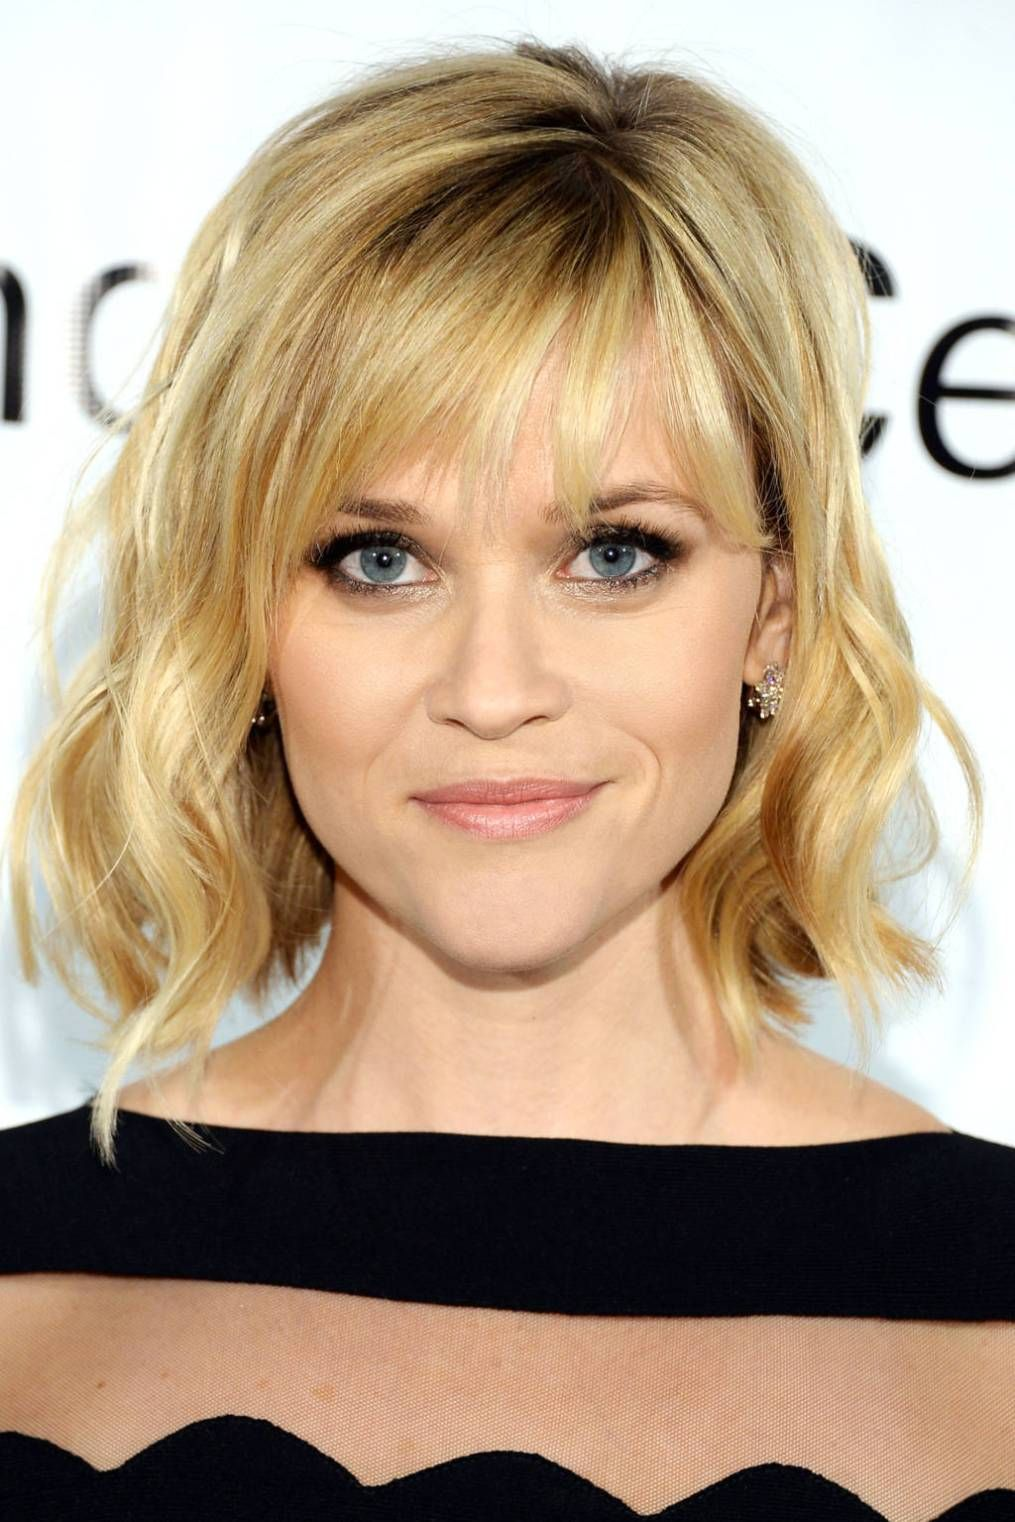 70 Winning Looks With Bob Haircuts For Fine Hair Hair Styles